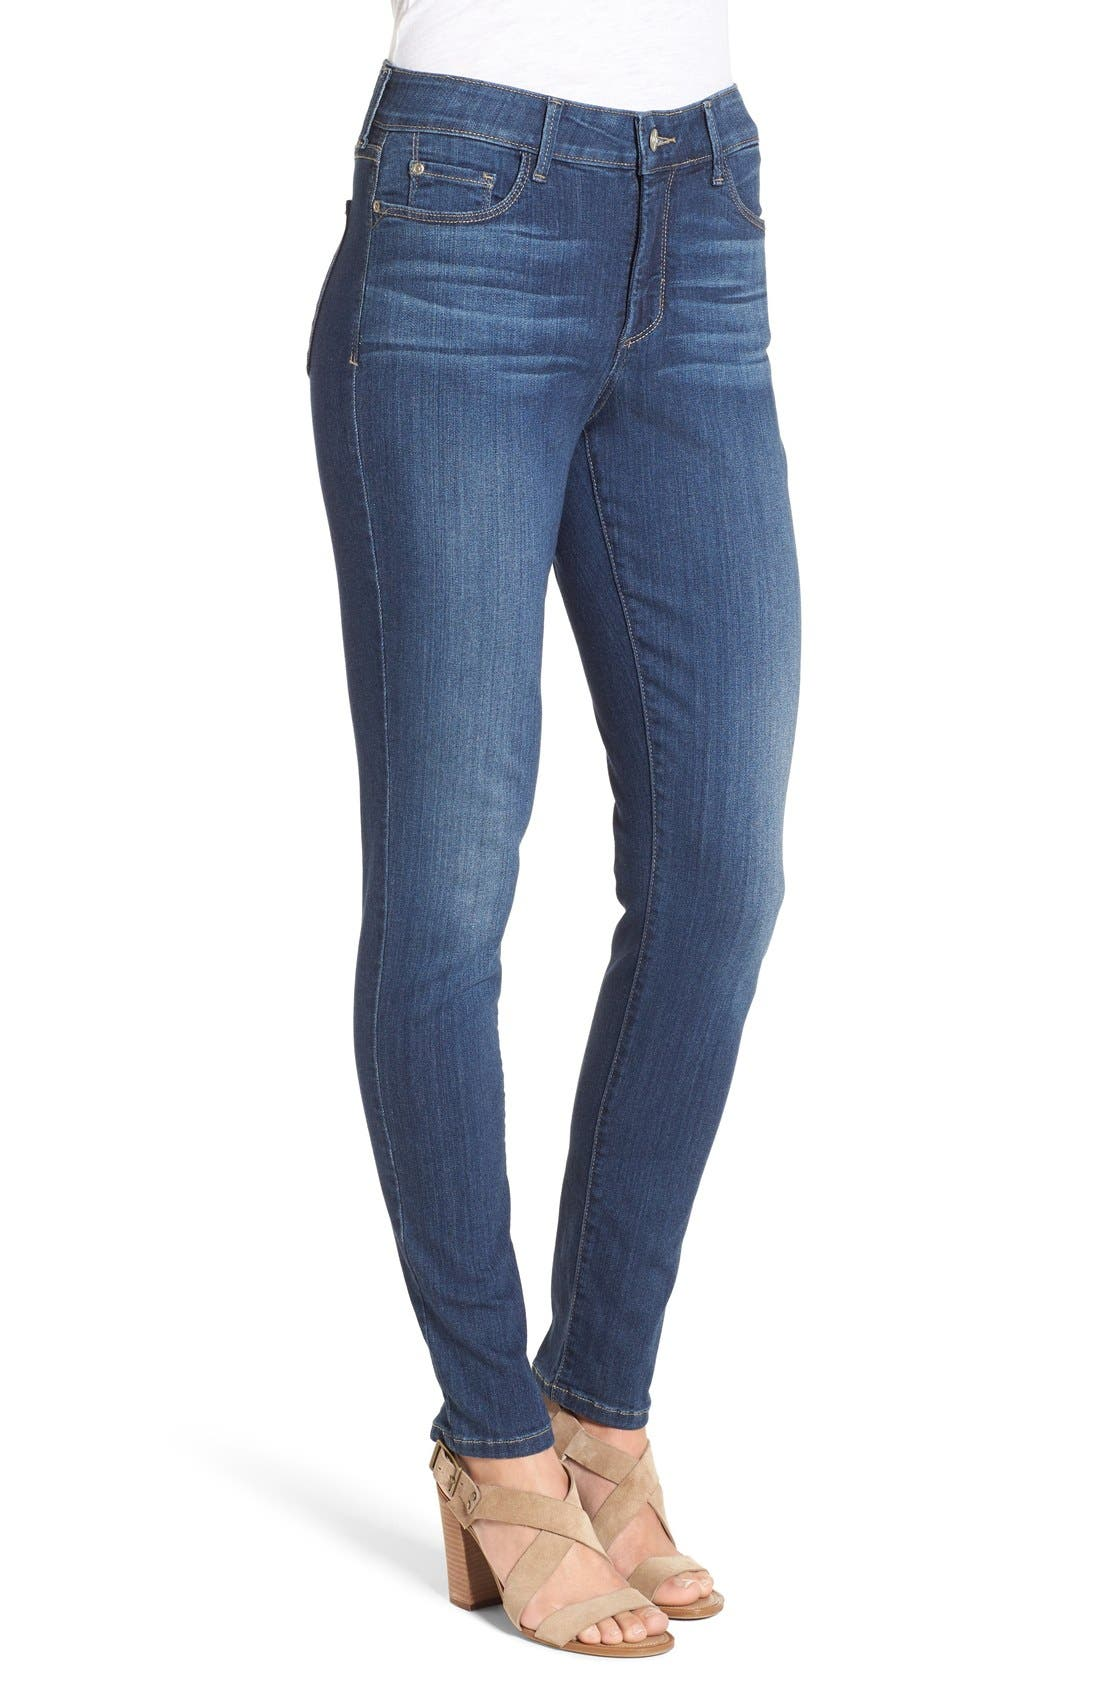 'Ami' Stretch Skinny Jeans,                             Alternate thumbnail 4, color,                             428